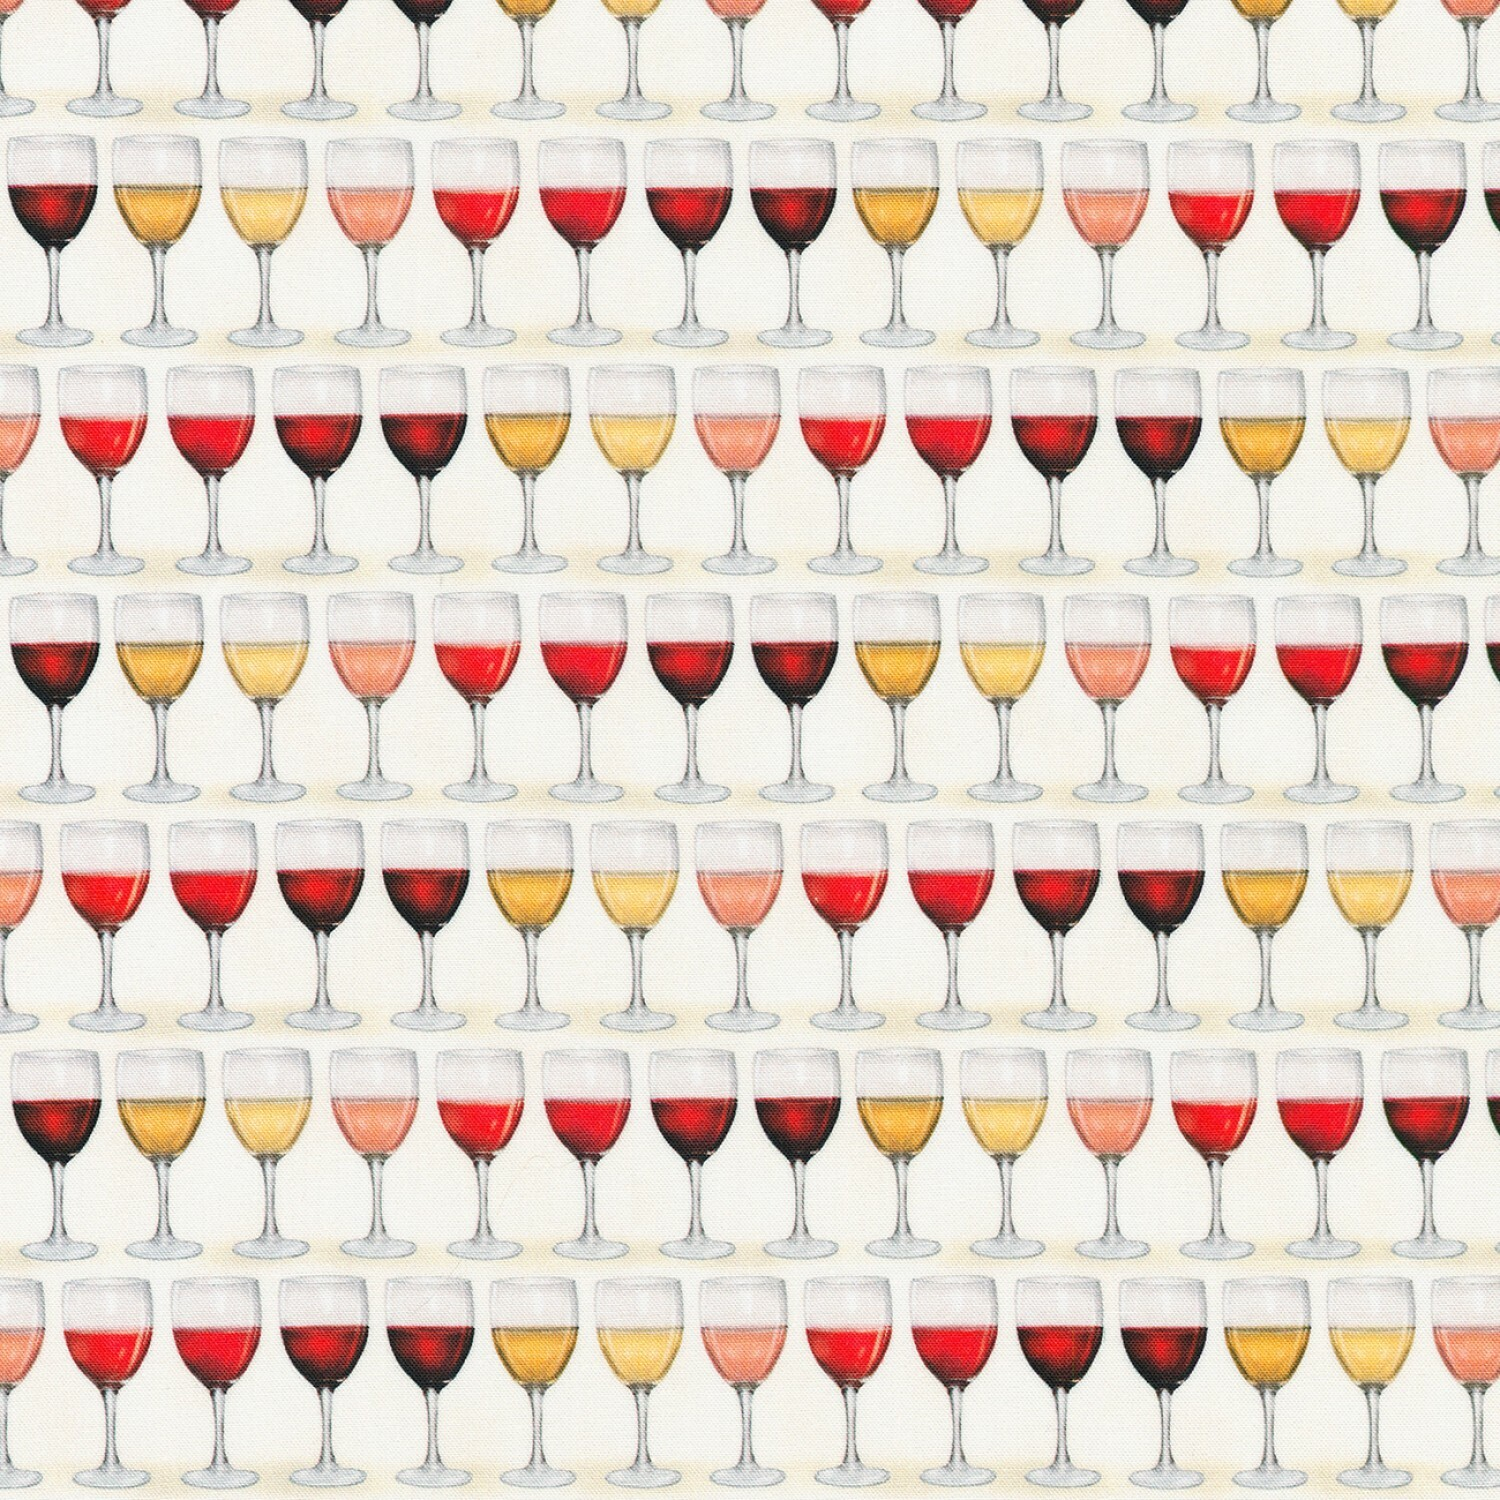 Uncorked - Wine Glasses - 1/2m cut 57017